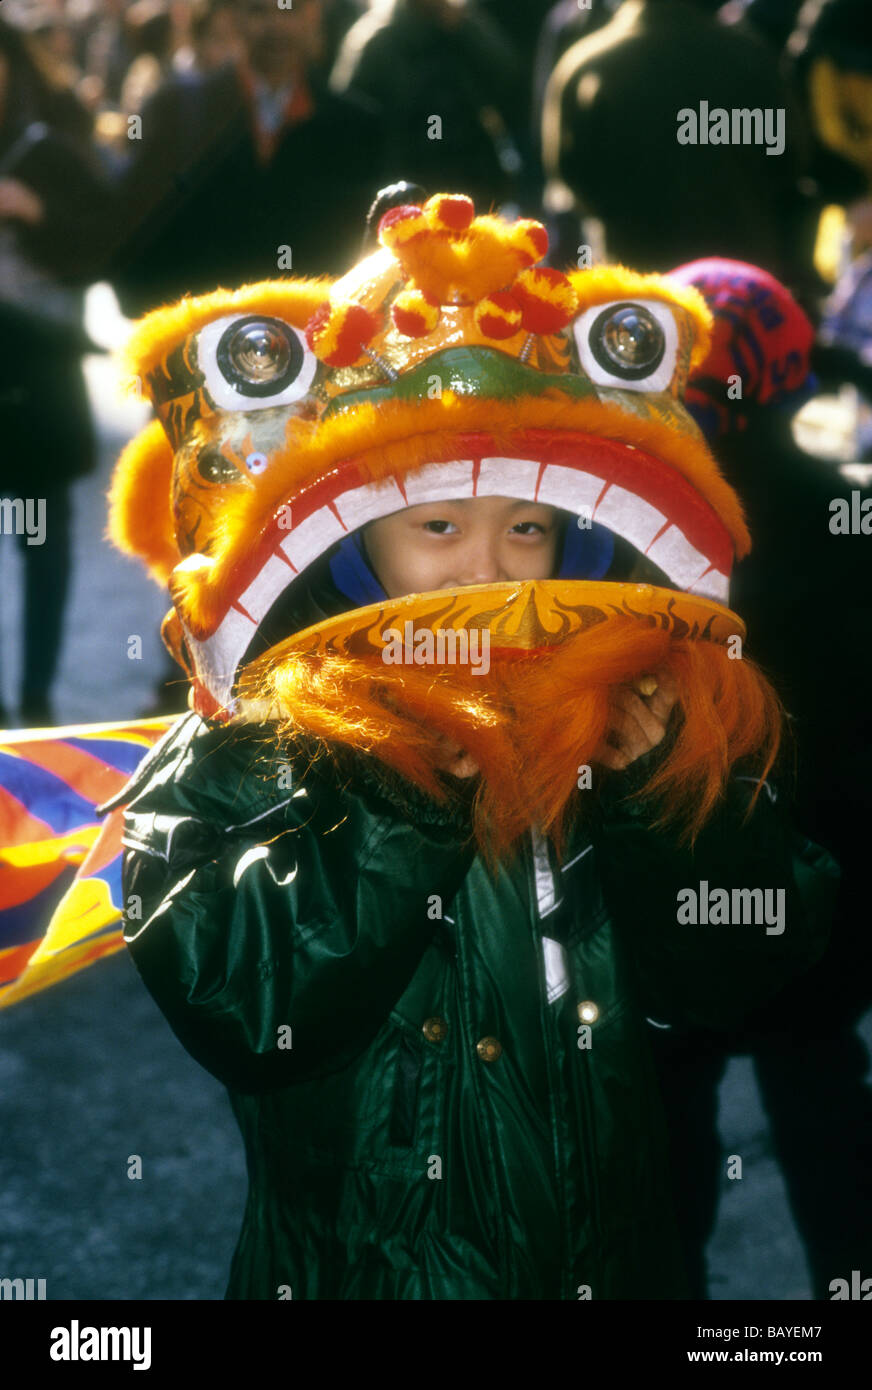 Chinese New Year s celebration in Chinatown in New York - Stock Image